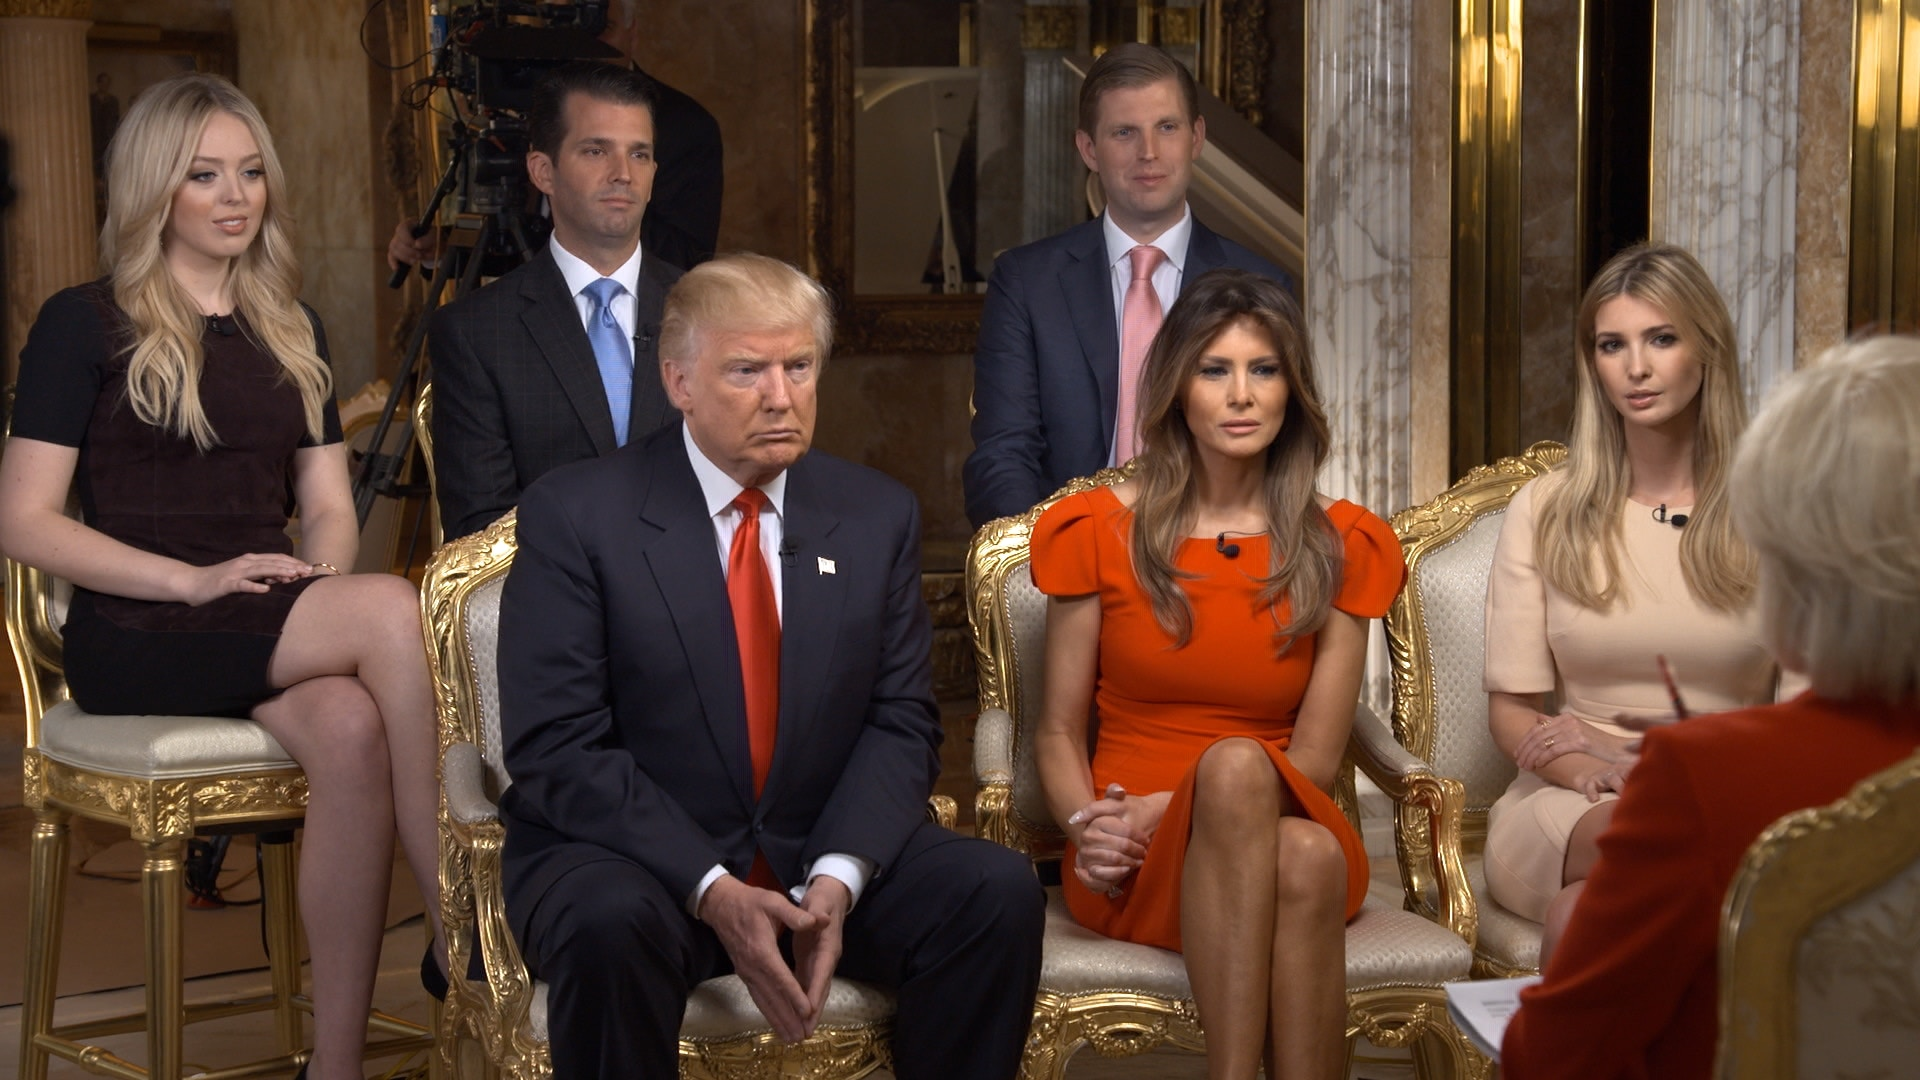 NEW YORK - NOVEMBER 11: 60 MINUTES Correspondent  Lesley Stahl interviews President-elect Donald J. Trump and his family shown here from left: Tiffany Trump, Donald Trump, Jr., Donald Trump, Eric Trump, Melania Trump, Ivanka Trump at his Manhattan home Friday afternoon (November 11, 2016).  The sit-down was his first post-election interview for television and will be broadcast on 60 MINUTES Sunday, Nov. 13 (7;00-8:00PM, ET/PT) on the CBS Television  Network. Image is a screen grab. (Photo by CBS via Getty Images)